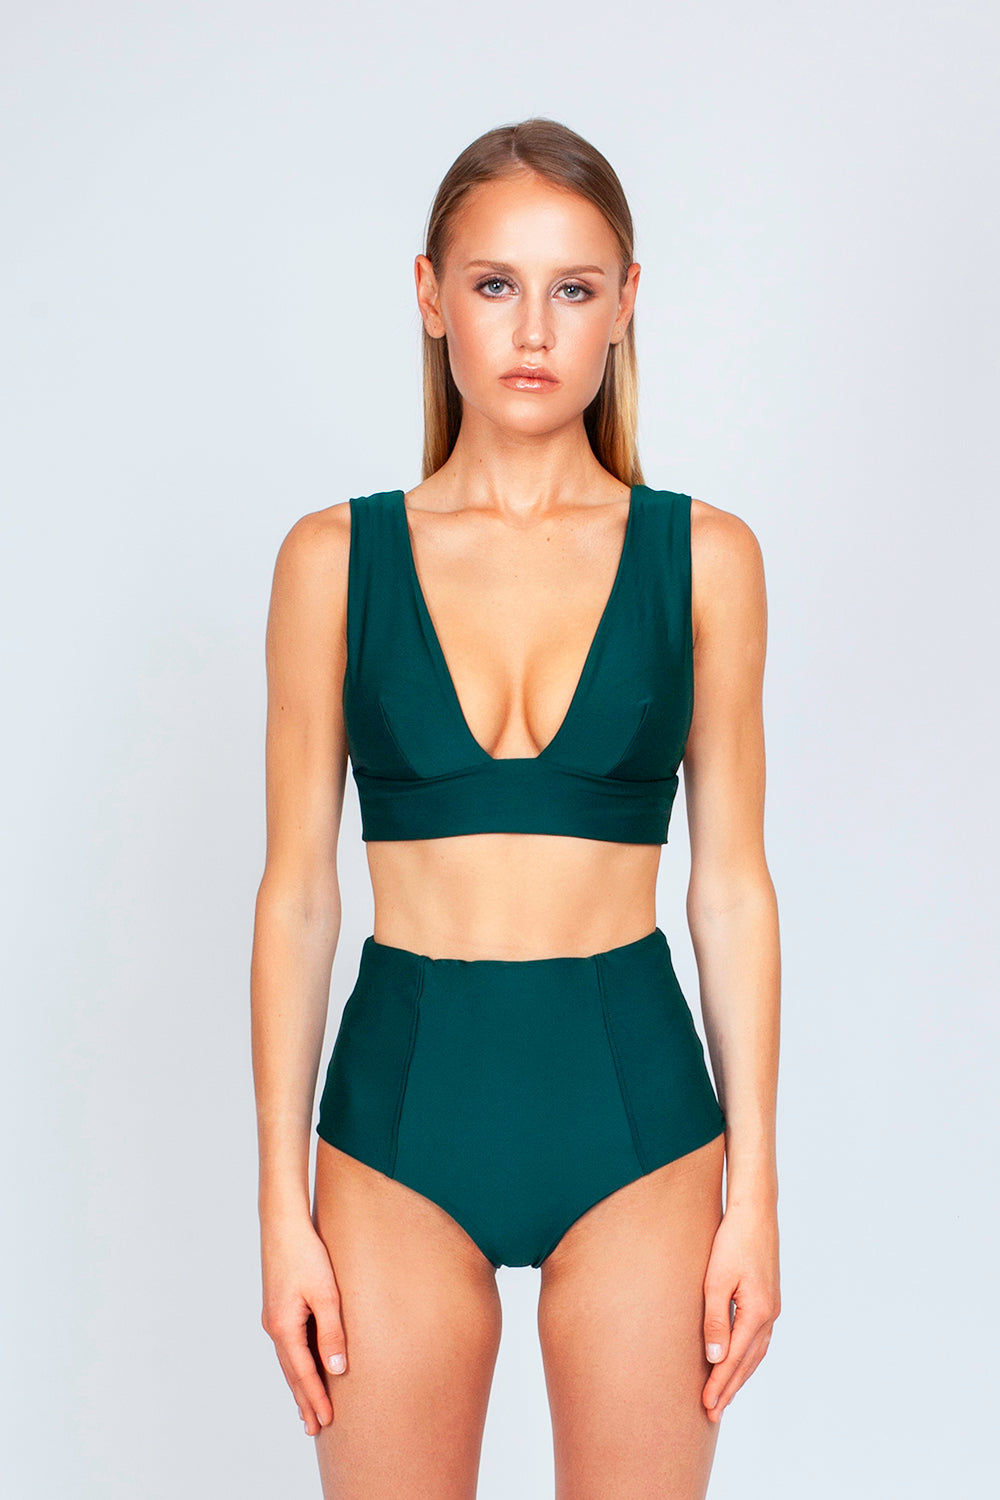 THE ONES WHO Dive Long Triangle Bikini Top - Emerald Green Bikini Top | Emerald Green| The Ones Who Dive Long Triangle Bikini Top - Emerald Green Long triangle top  V neckline  Thick bra band  V Back  Pull over  Made in LA  Fabric: 80% Nylon 20% Elastane Front View